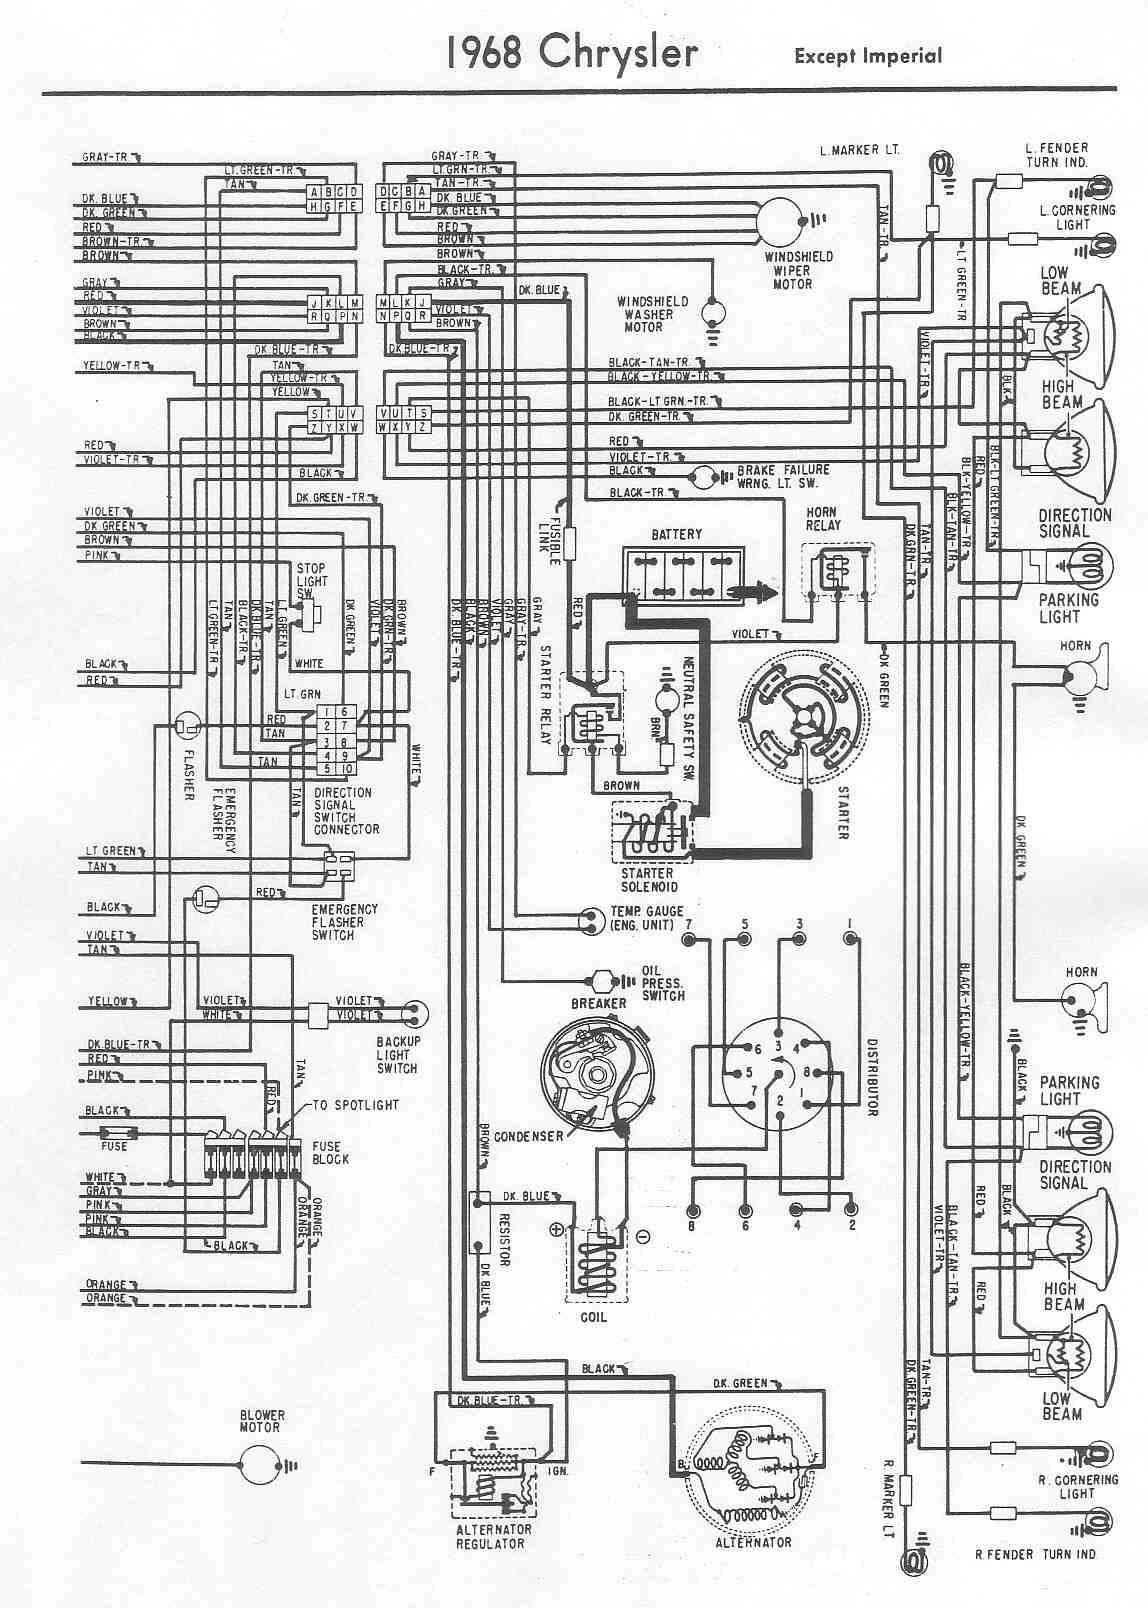 1968 Cadillac Ac Wiring Diagram Online Ford Truck Diagrams Deville Data 2005 Mustang